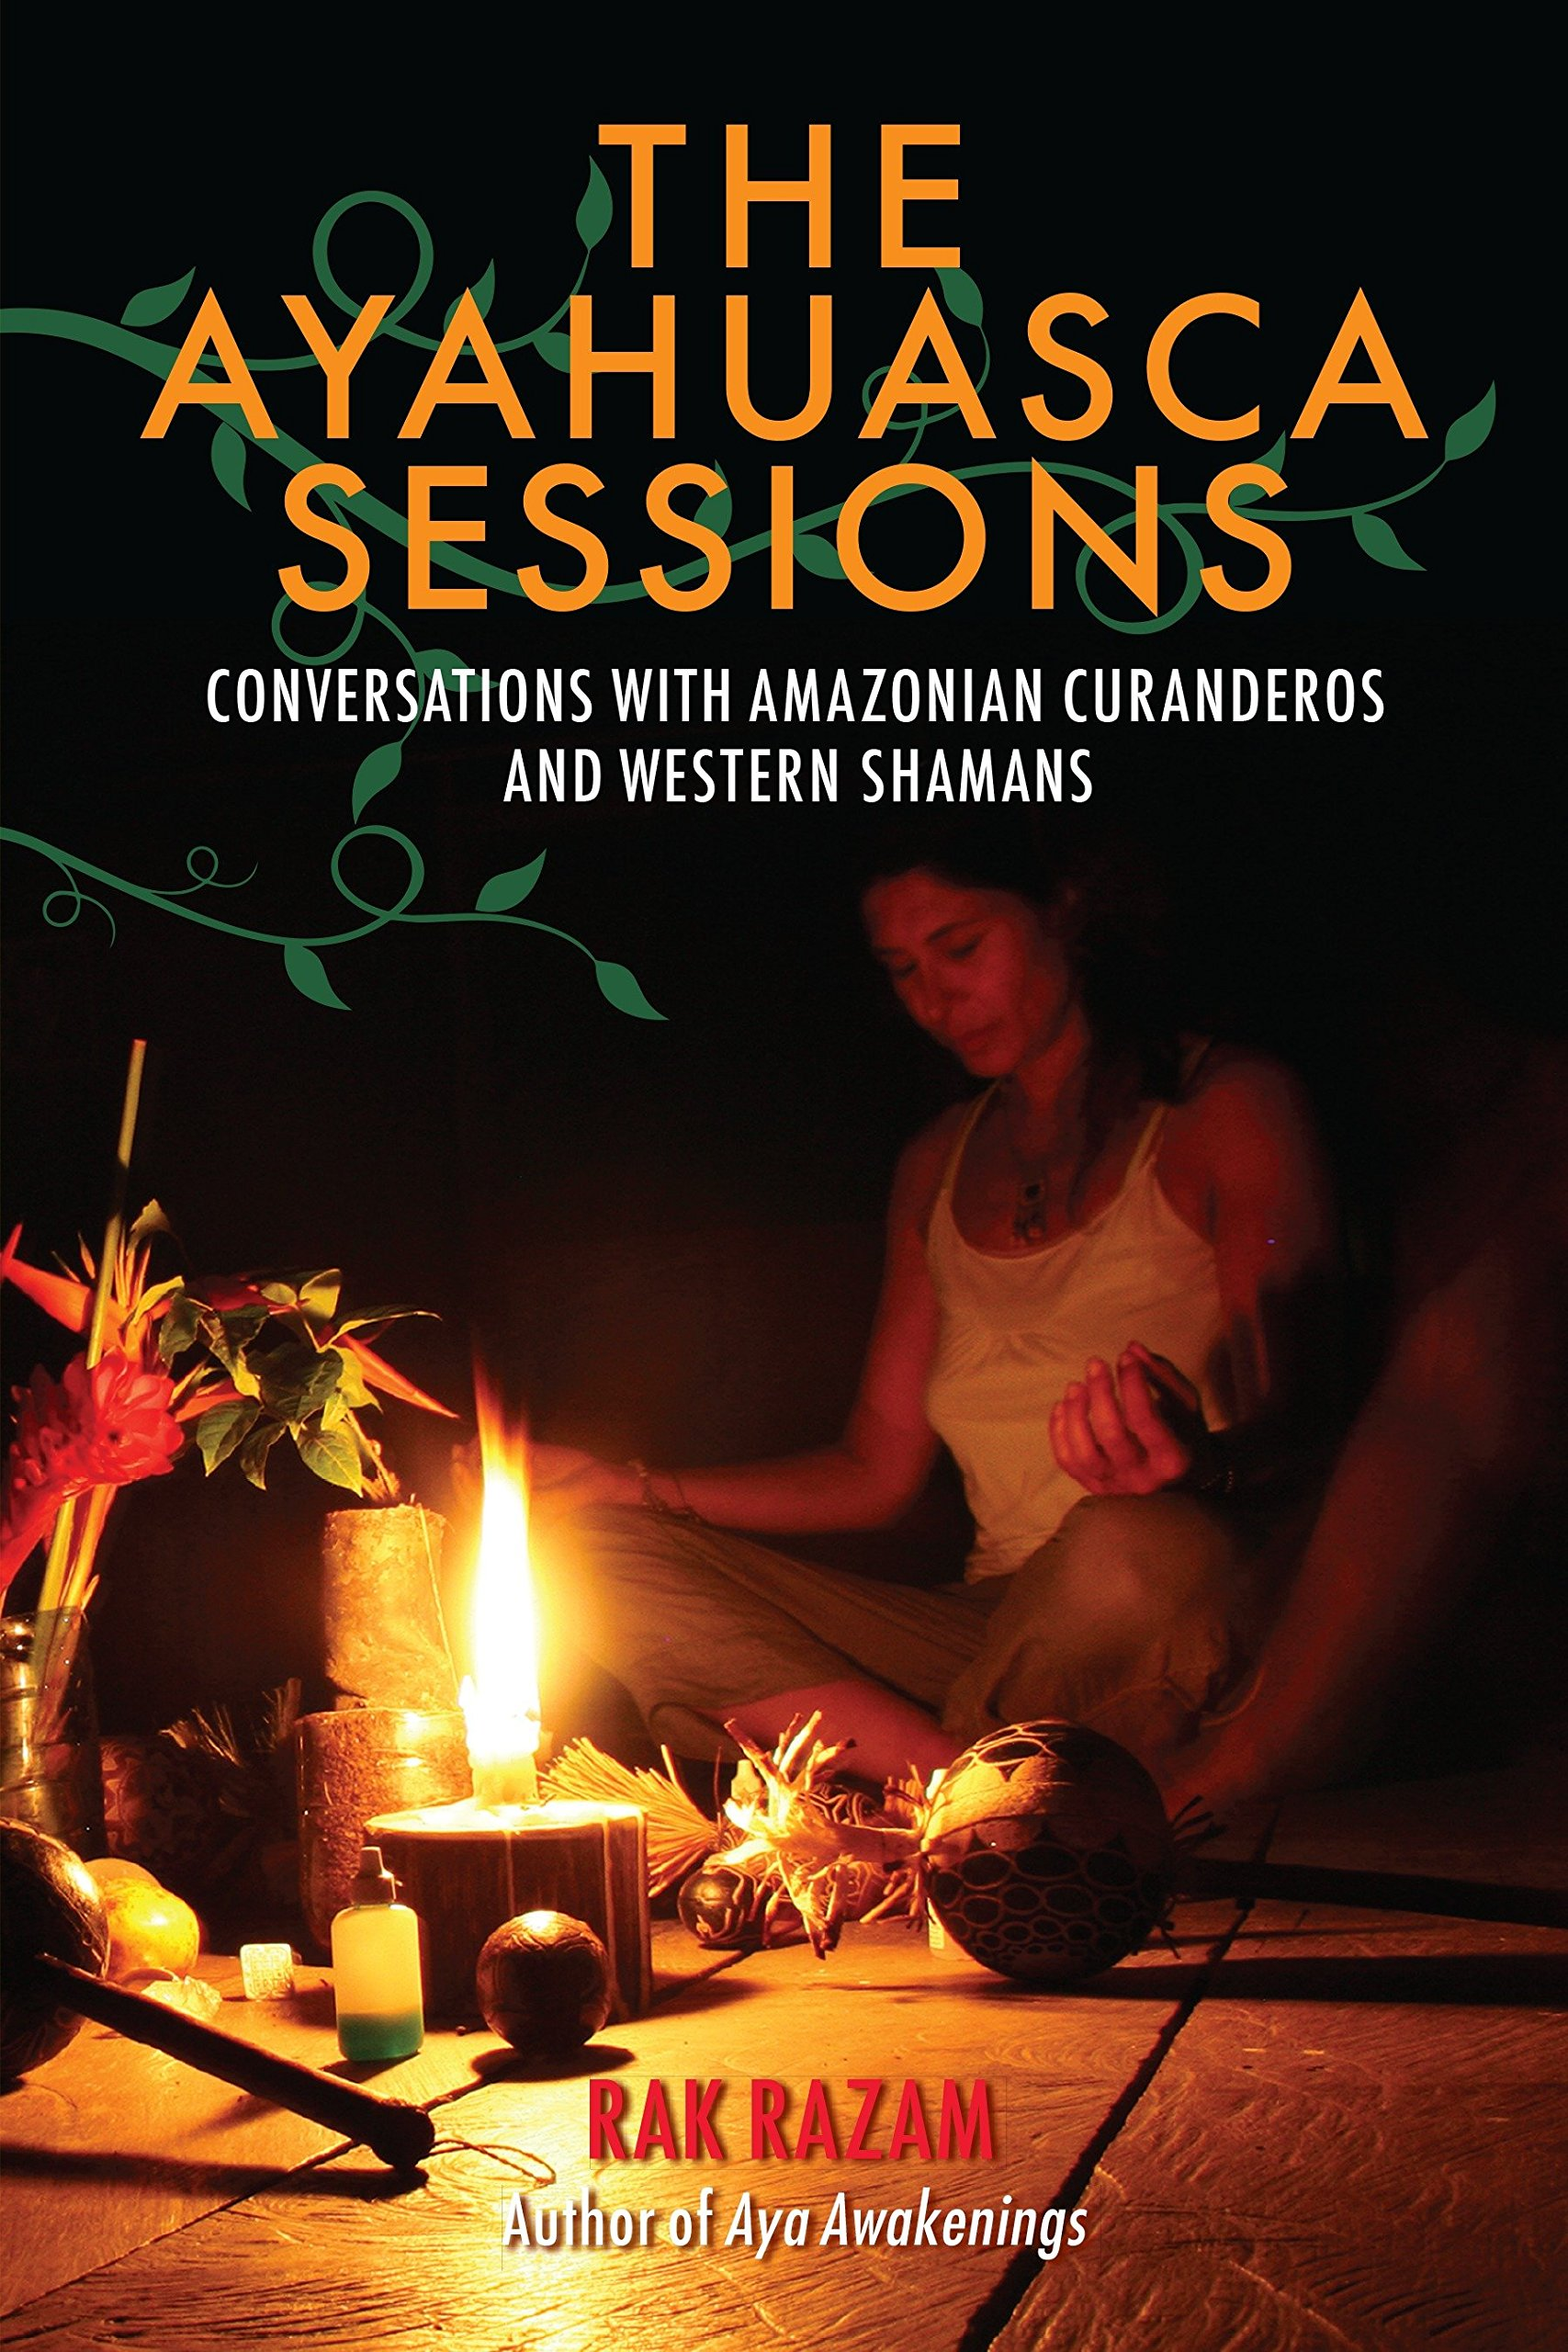 The Ayahuasca Sessions: Conversations with Amazonian Curanderos and Western Shamans by North Atlantic Books